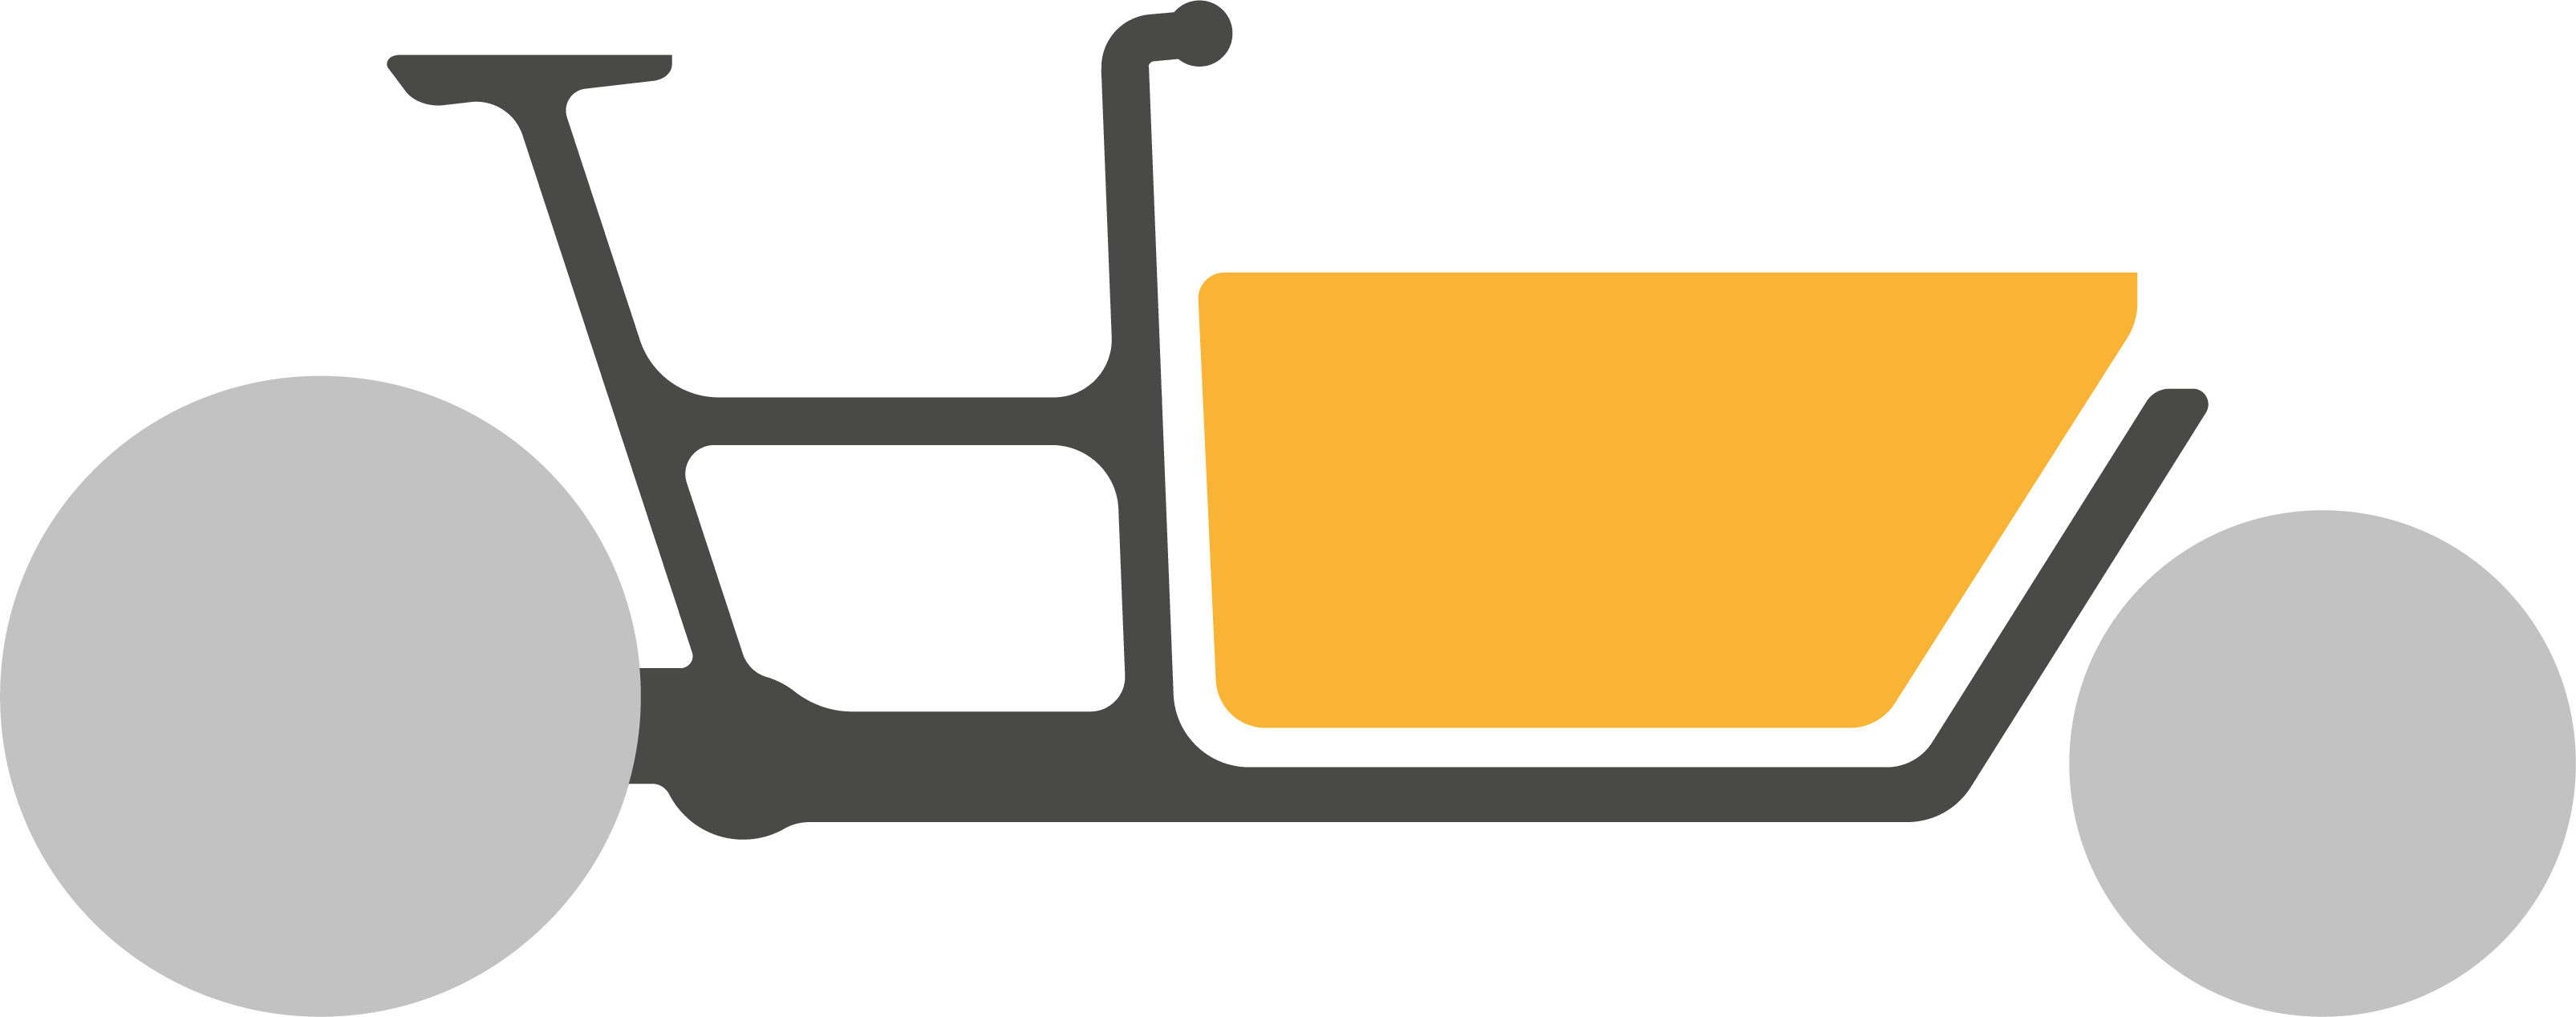 Pictogram of a black cargo bike with an orange box in front and grey wheels